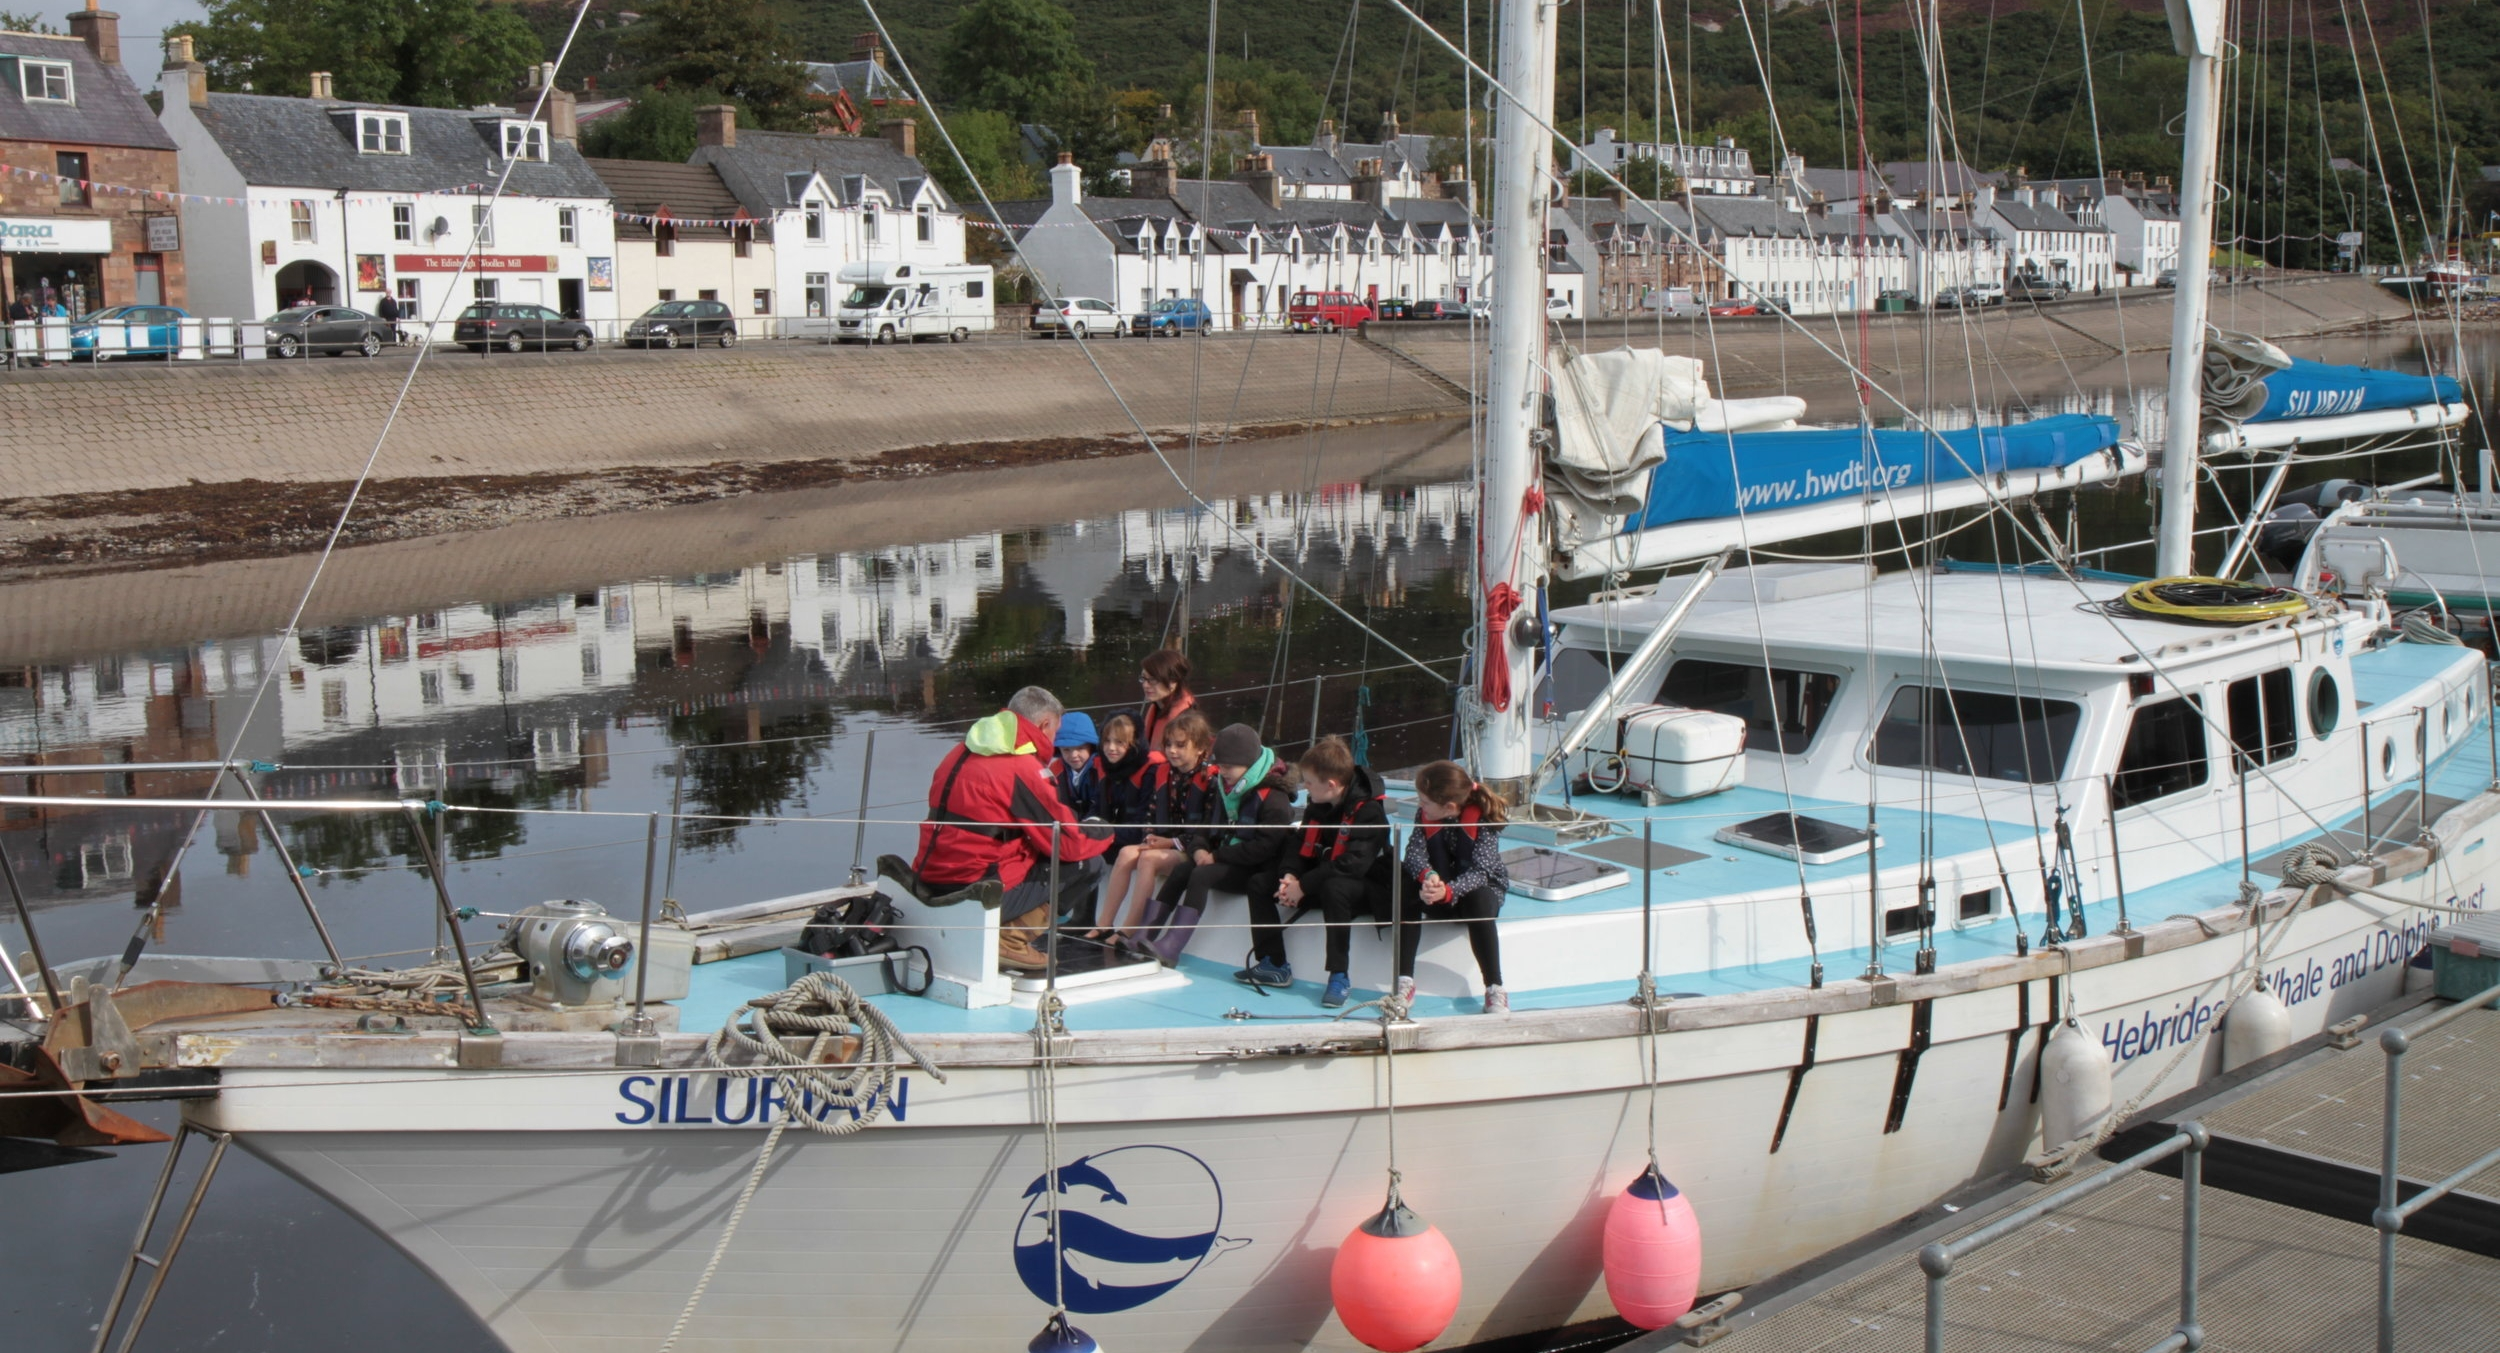 Silurian  still welcomes kids aboard to learn about their local marine environment